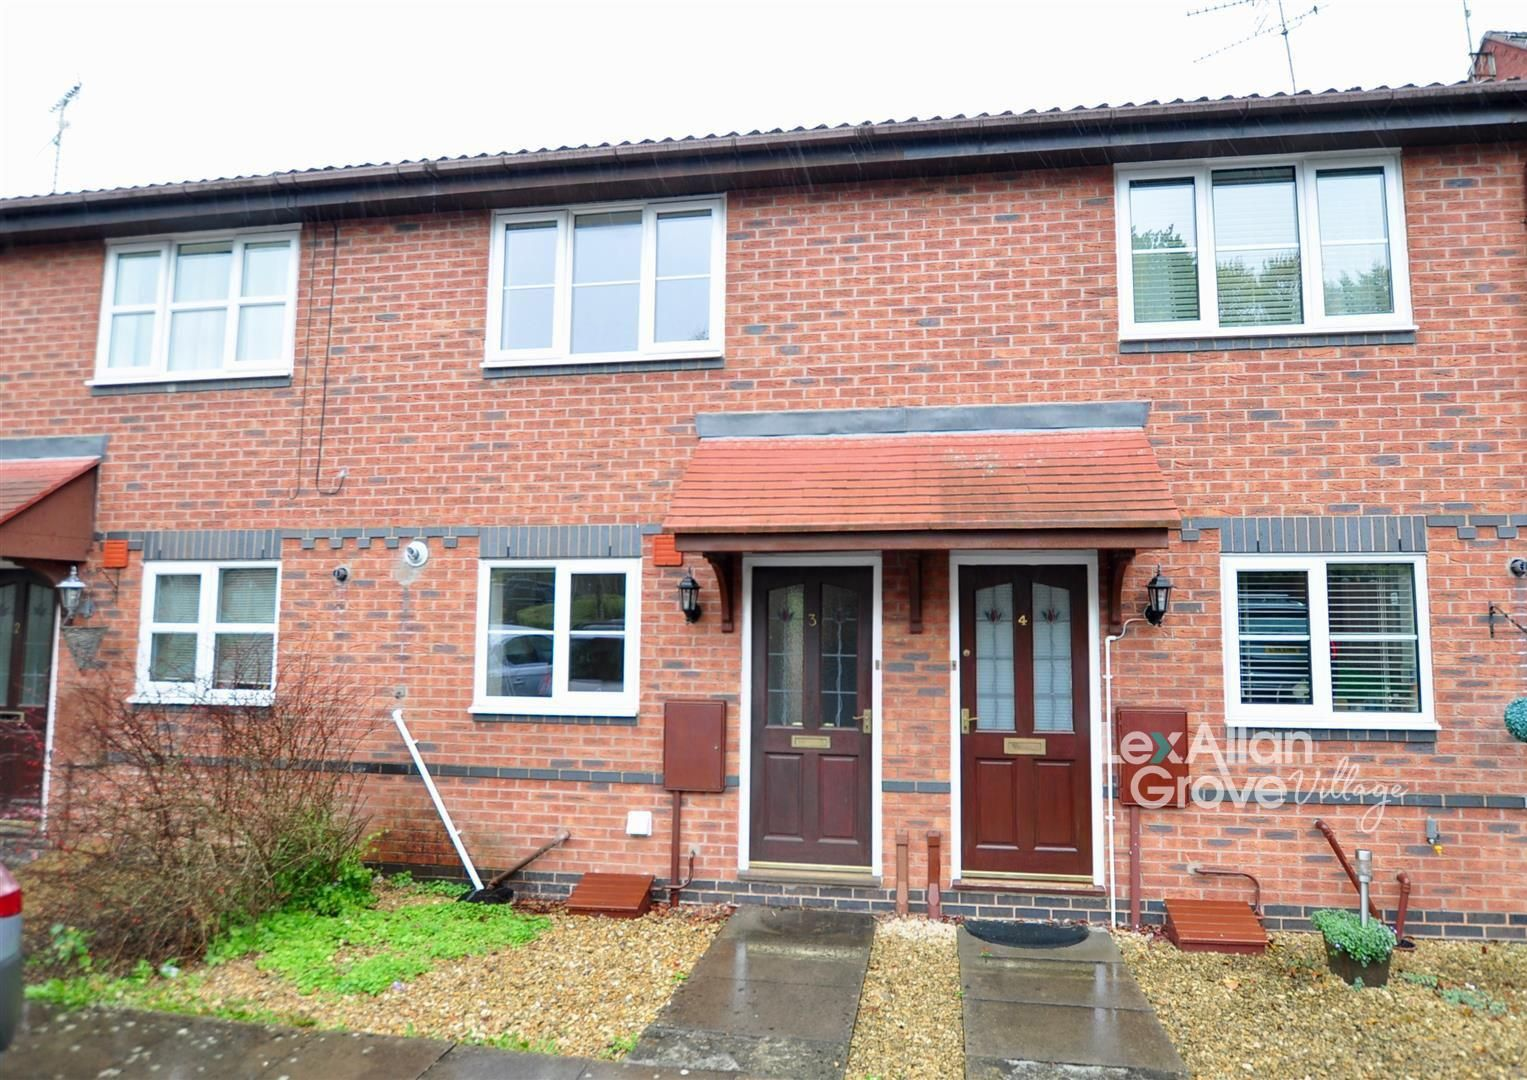 2 bed terraced for sale in Hagley, DY9